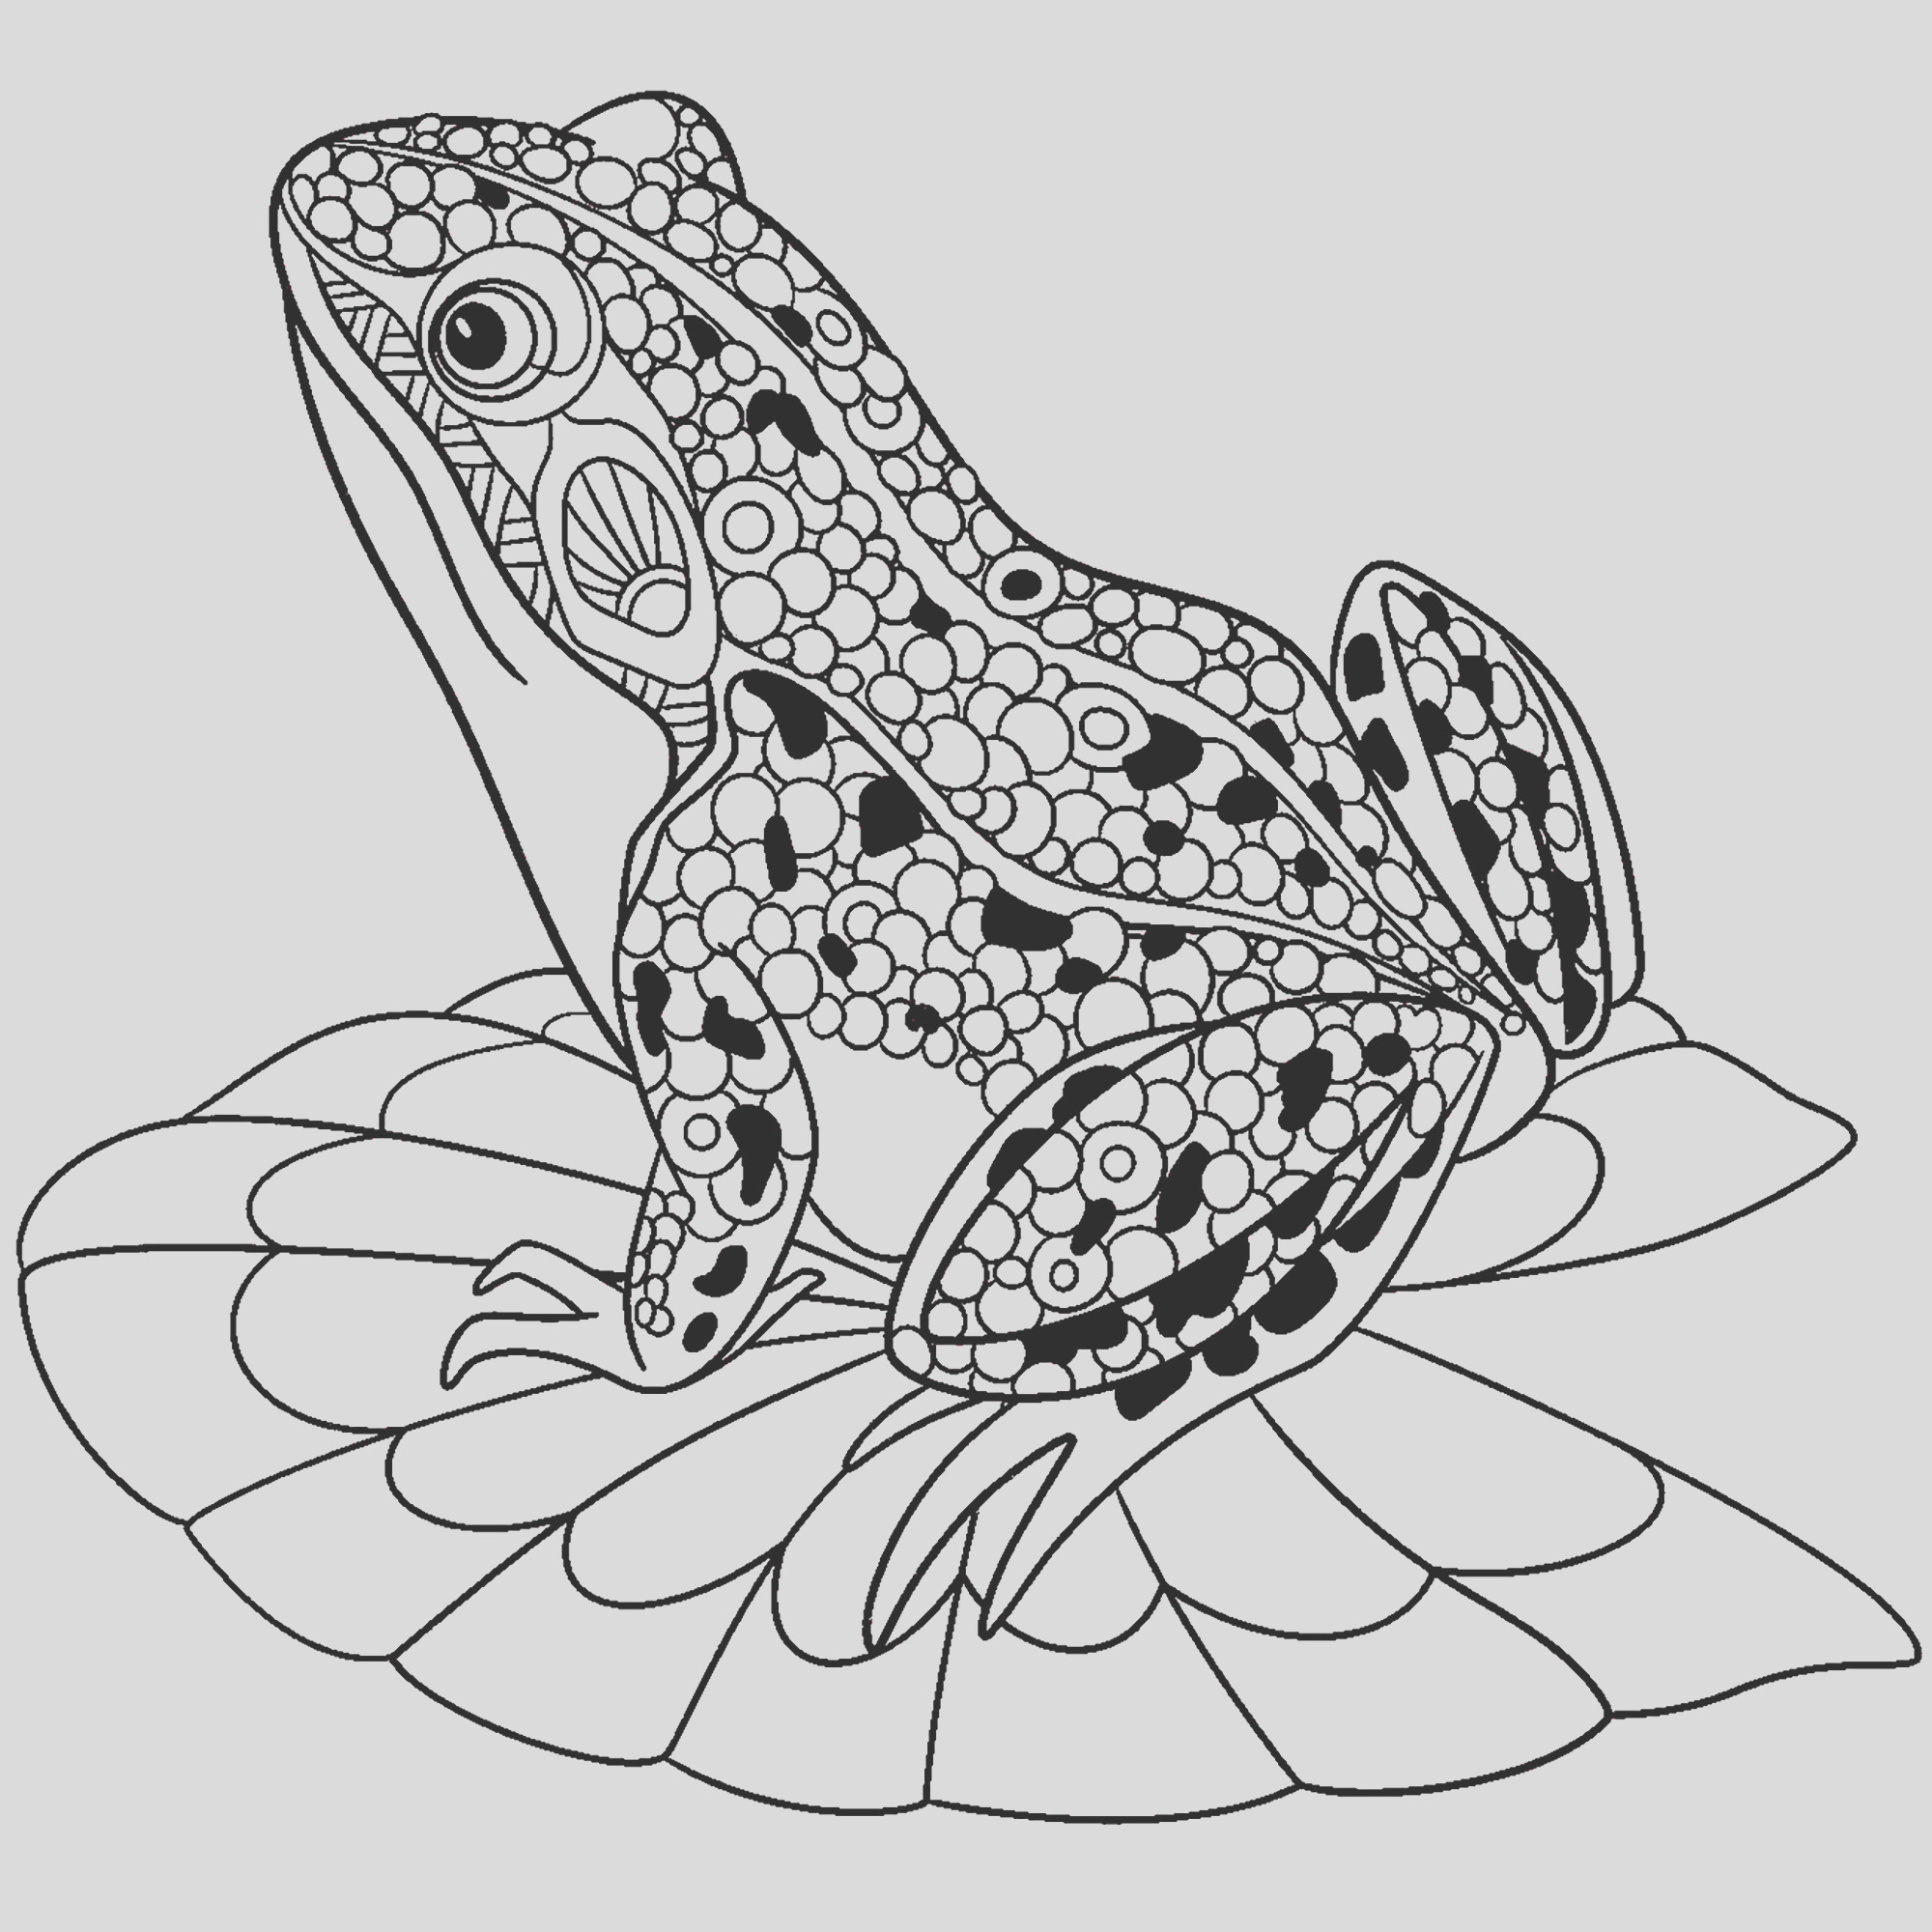 frogs image=frogs Coloring pages for children JustColor kids frogs 1